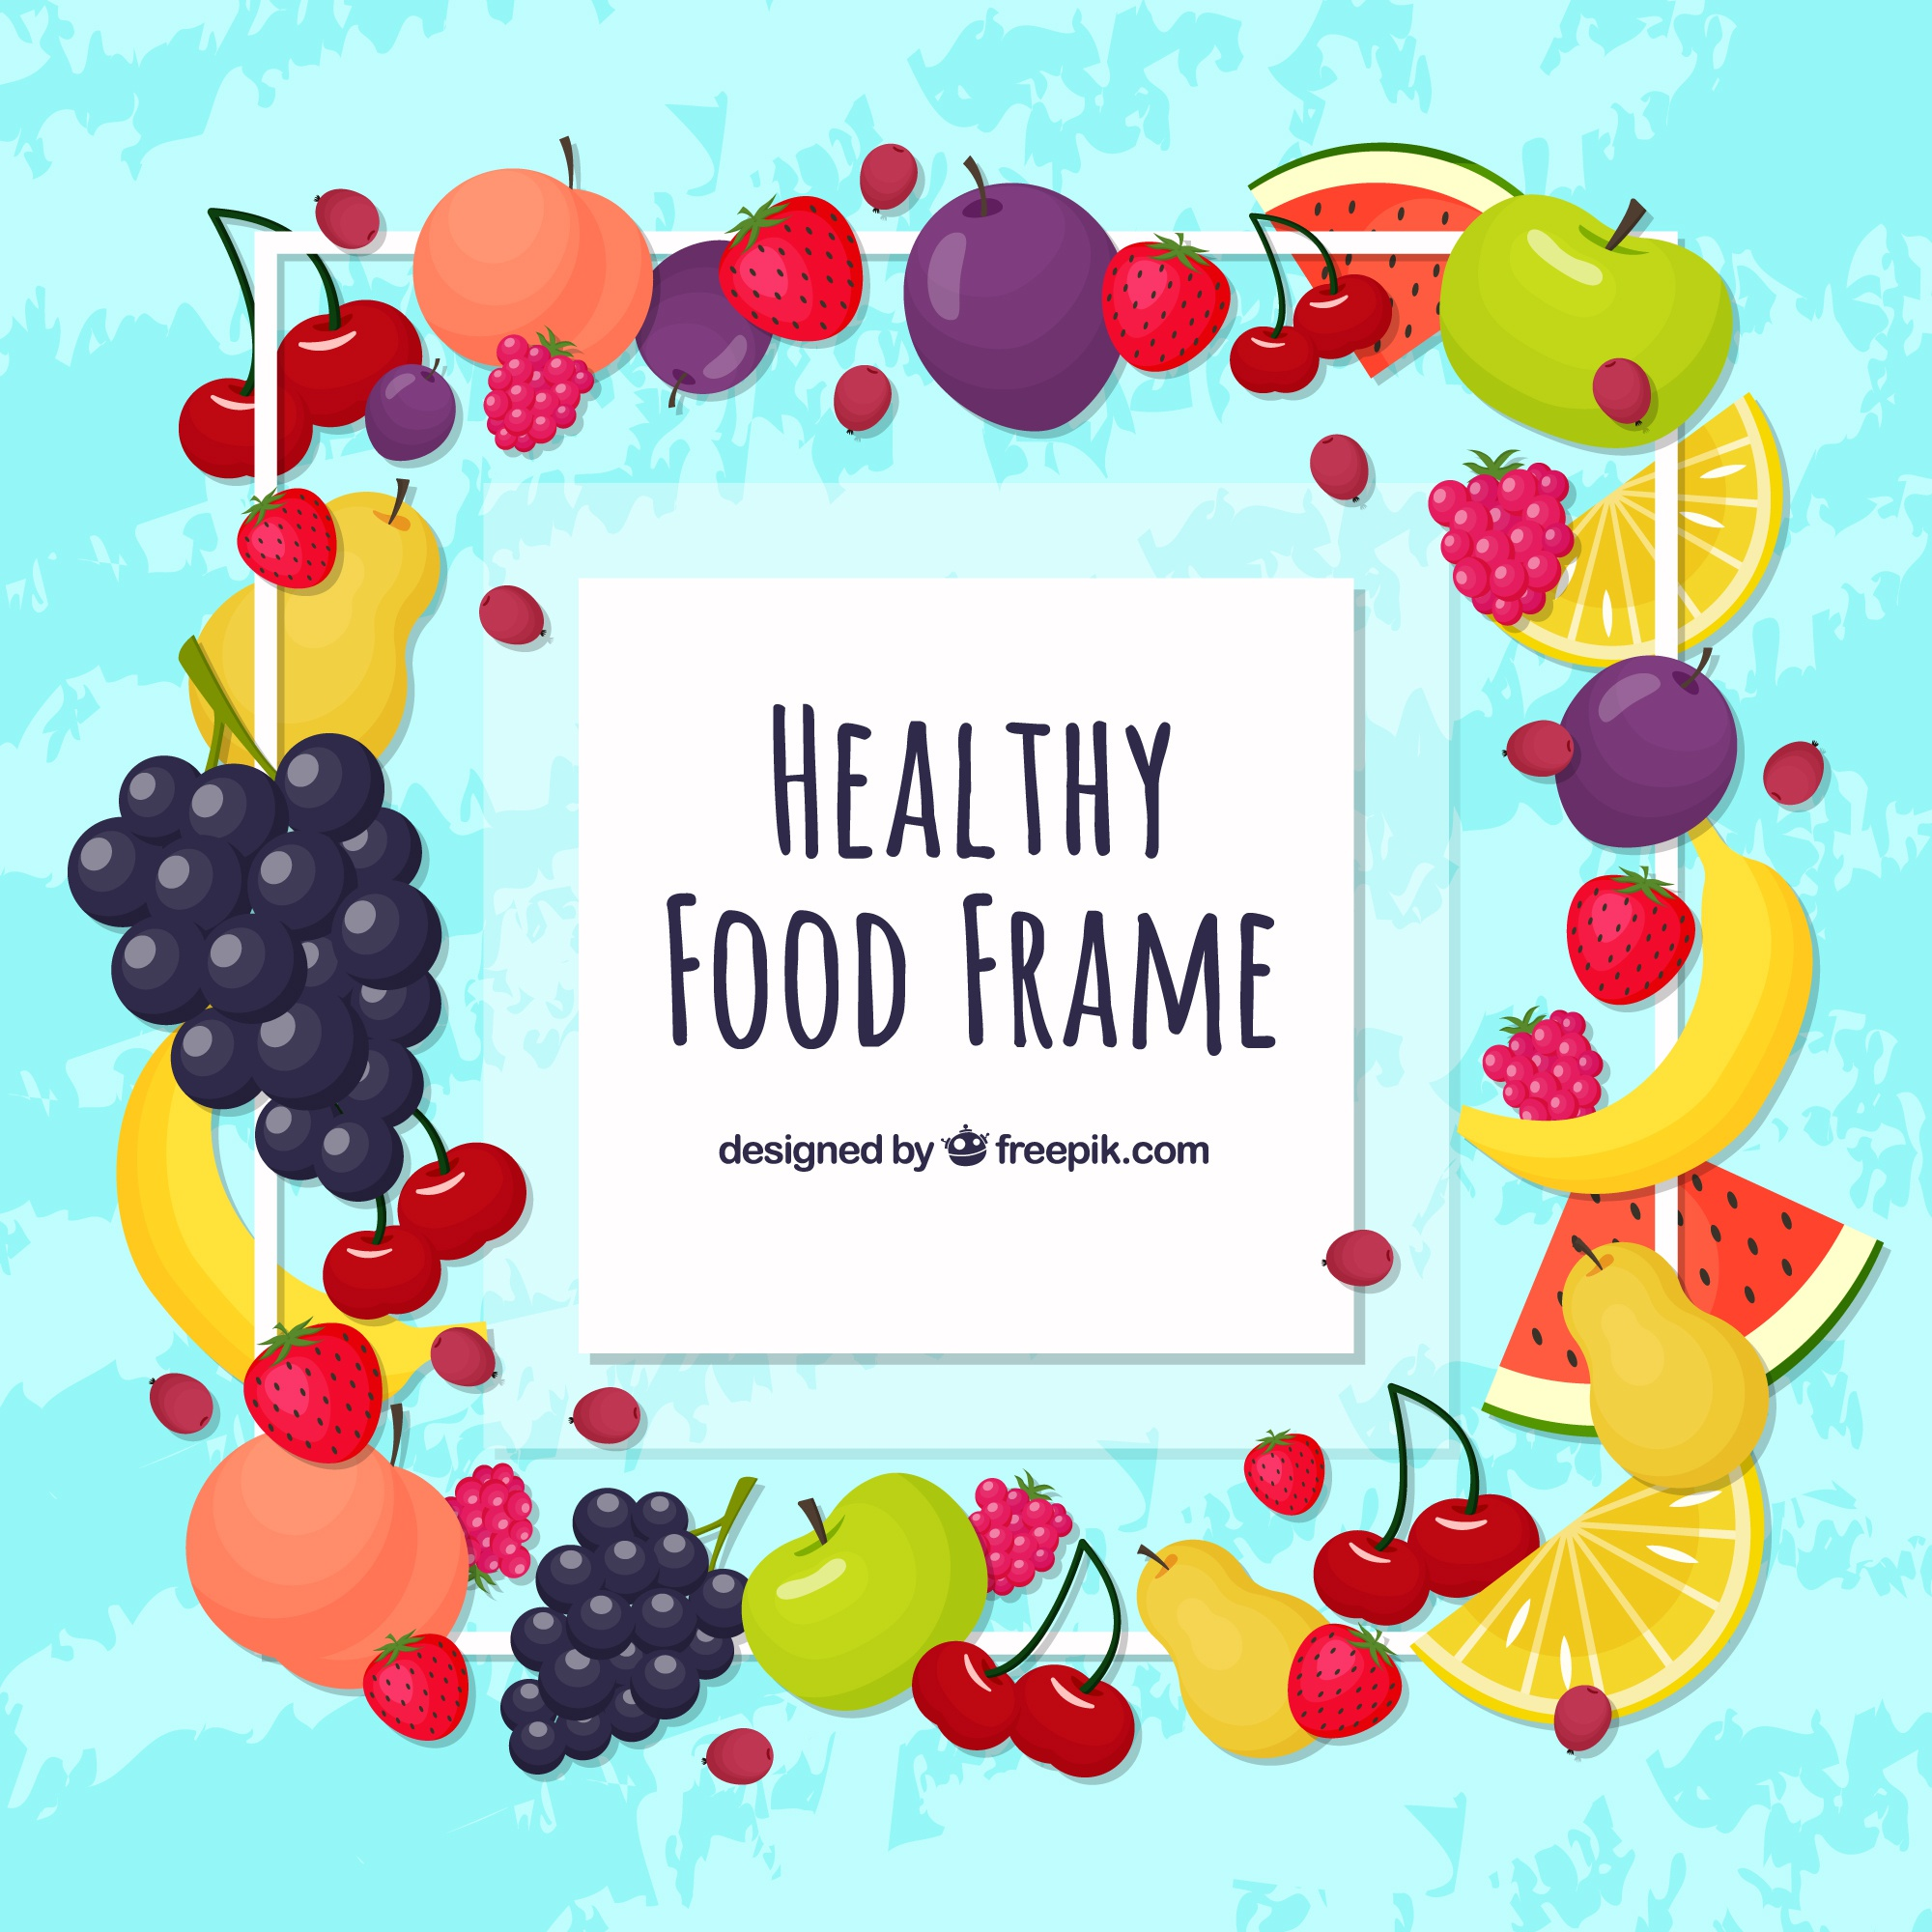 Food frame with healthy food